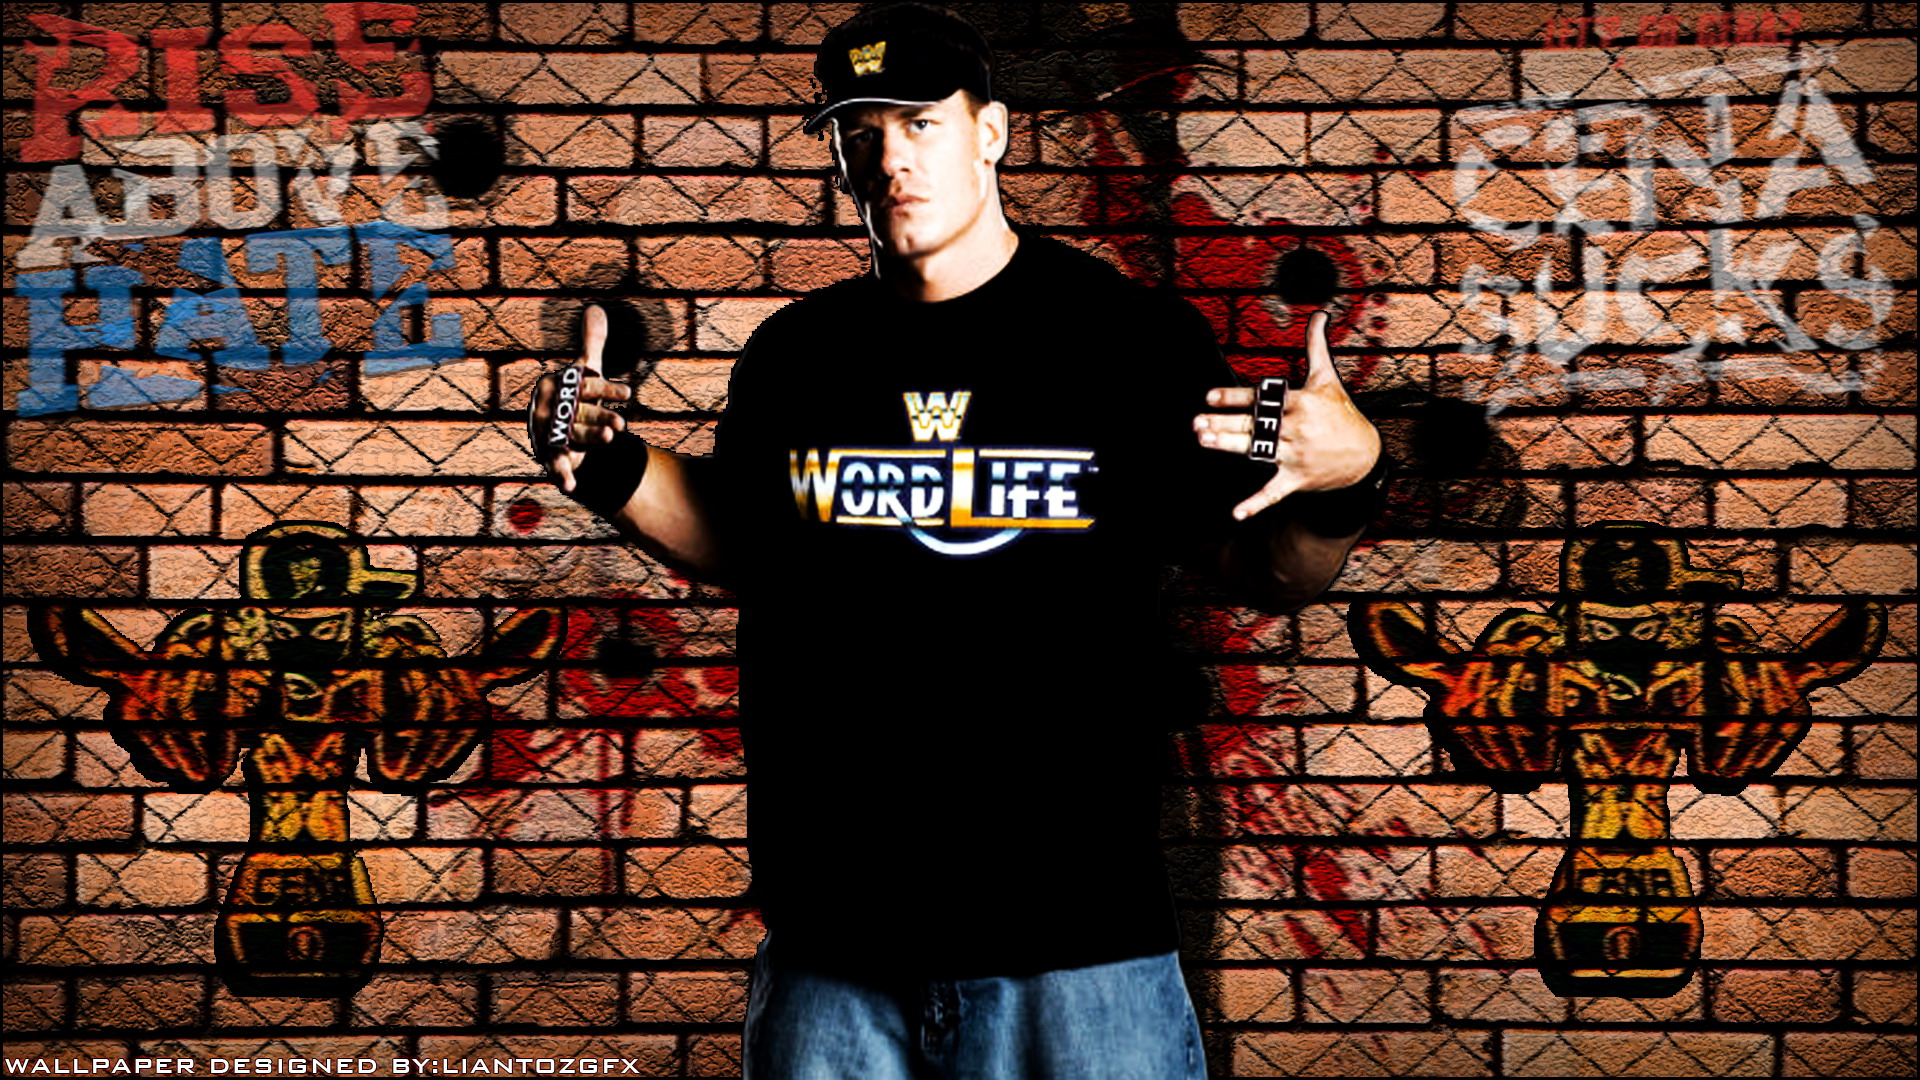 John Davidson (entertainer) HD Wallpapers Entertainment Wwe John Cena Brick Wall Wallpaper wallpaper